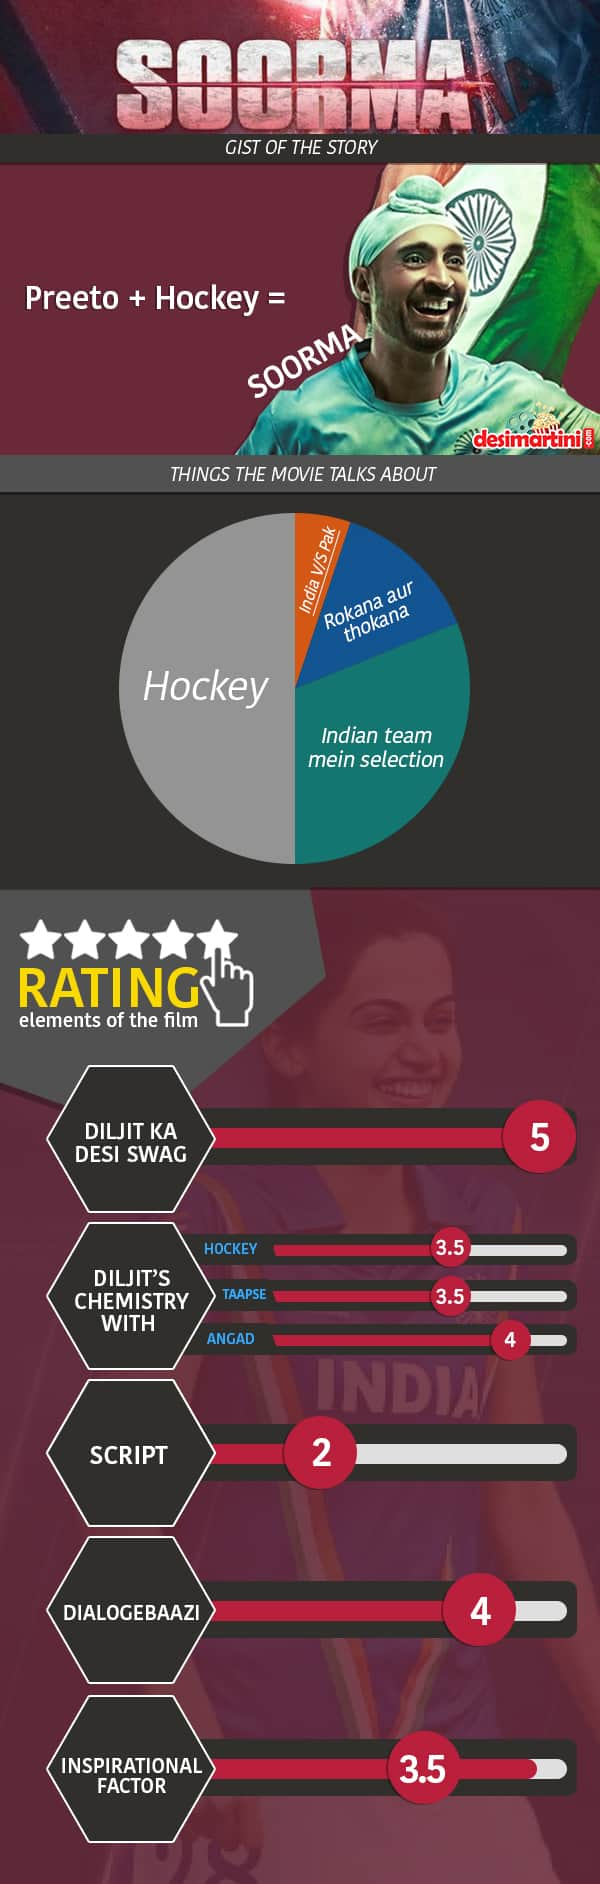 Will Diljit Dosanj's Soorma Create An Everlasting Impact At The Box-Office? This Pictorial Review Will Tell You...